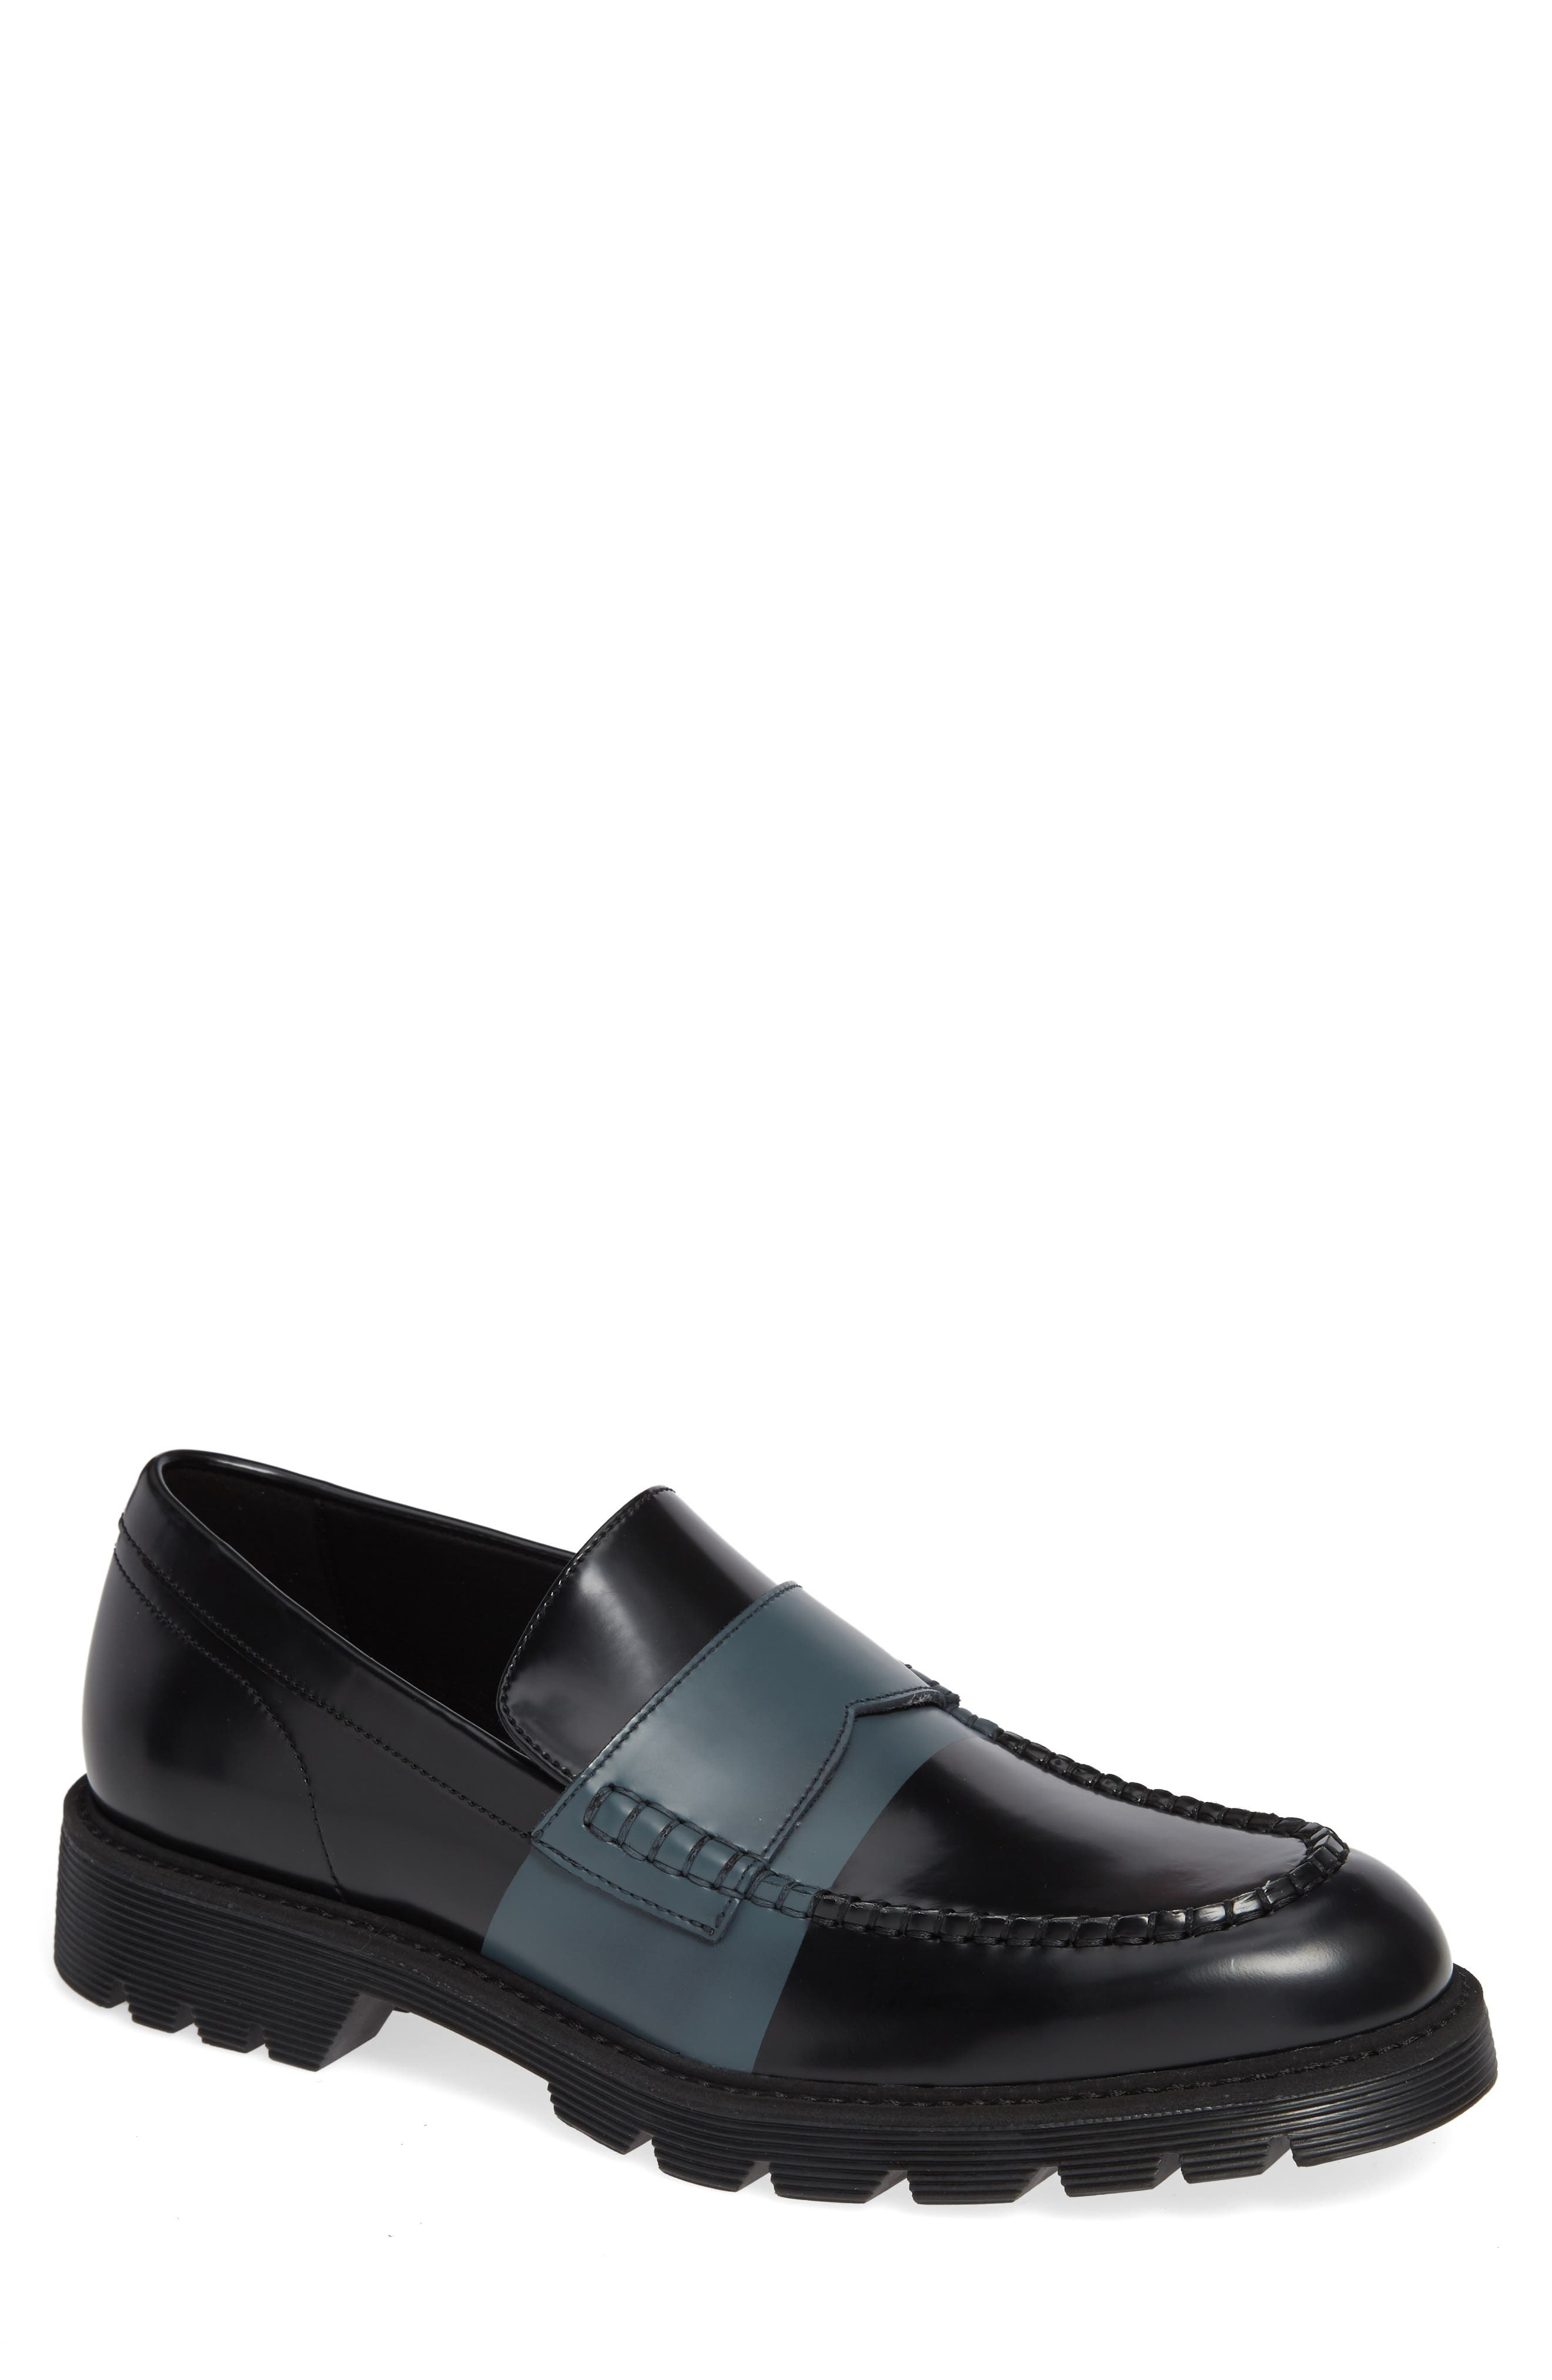 Florentino Penny Loafer,                             Main thumbnail 1, color,                             BLACK LEATHER